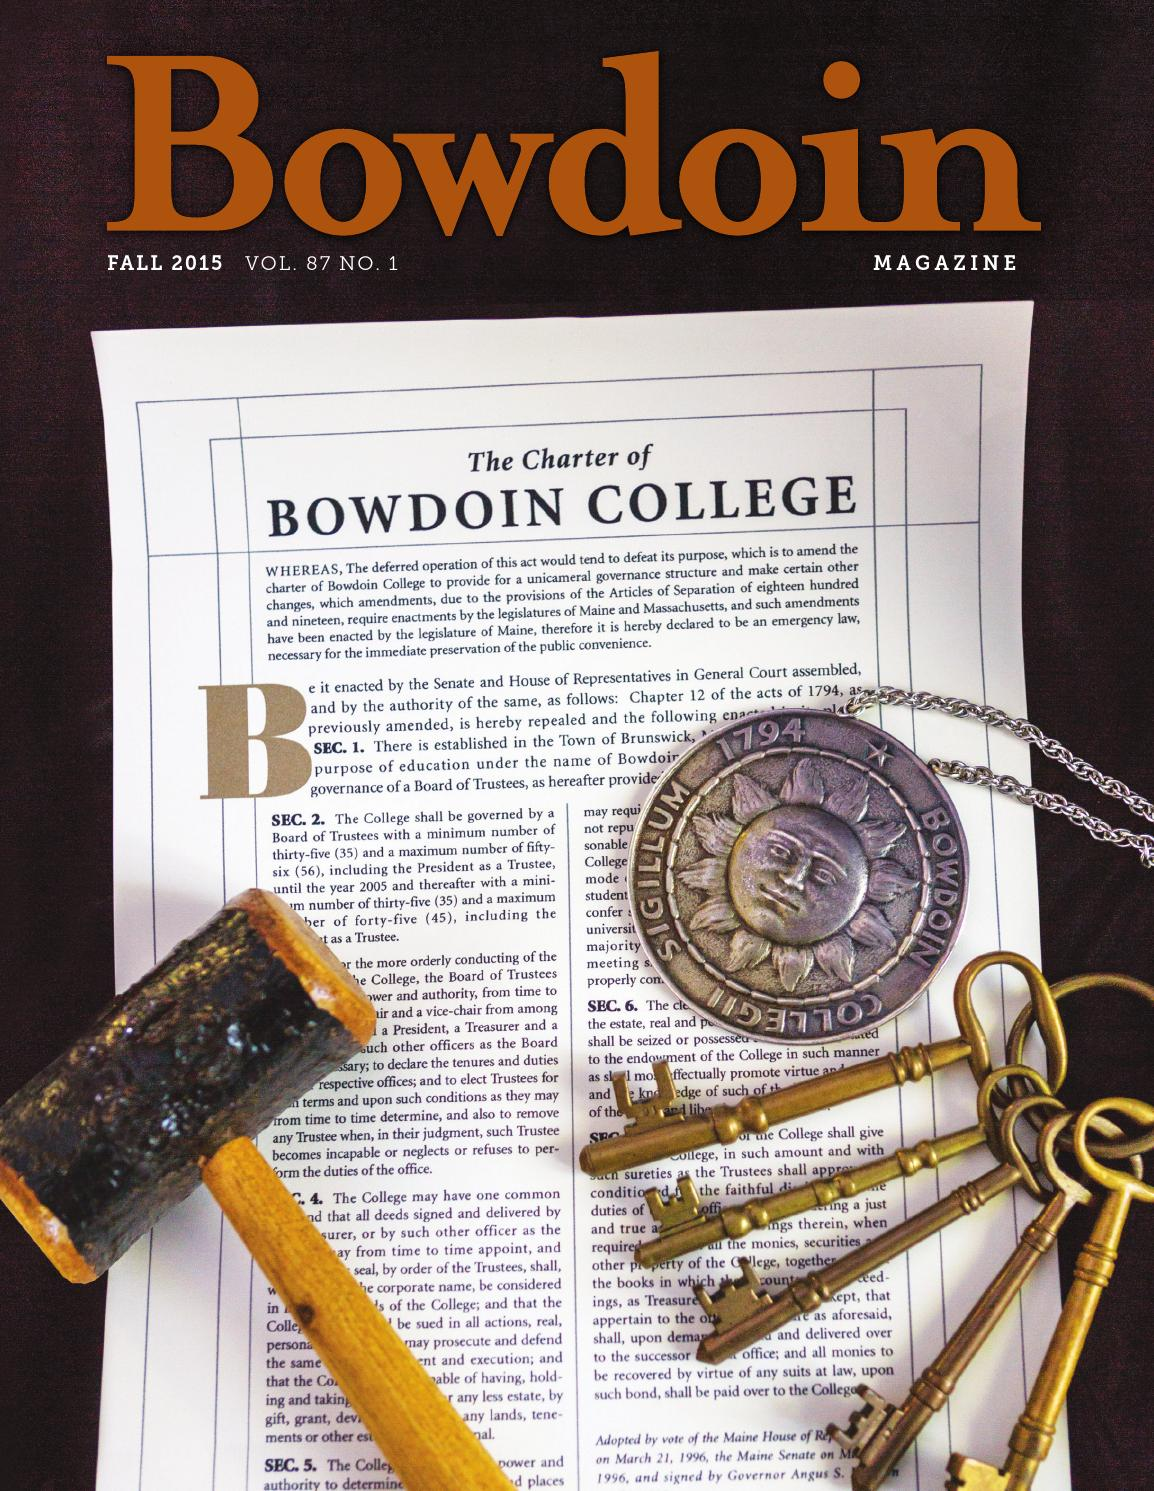 college confidential bowdoin essay The requirements: 2 essays of up to 250 words 2 short-answer lists supplemental essay type(s): why, oddball, short answer university of southern california 2018-19 application essay questions explained there's no nice way to say this: the usc application is kind of all over the place.